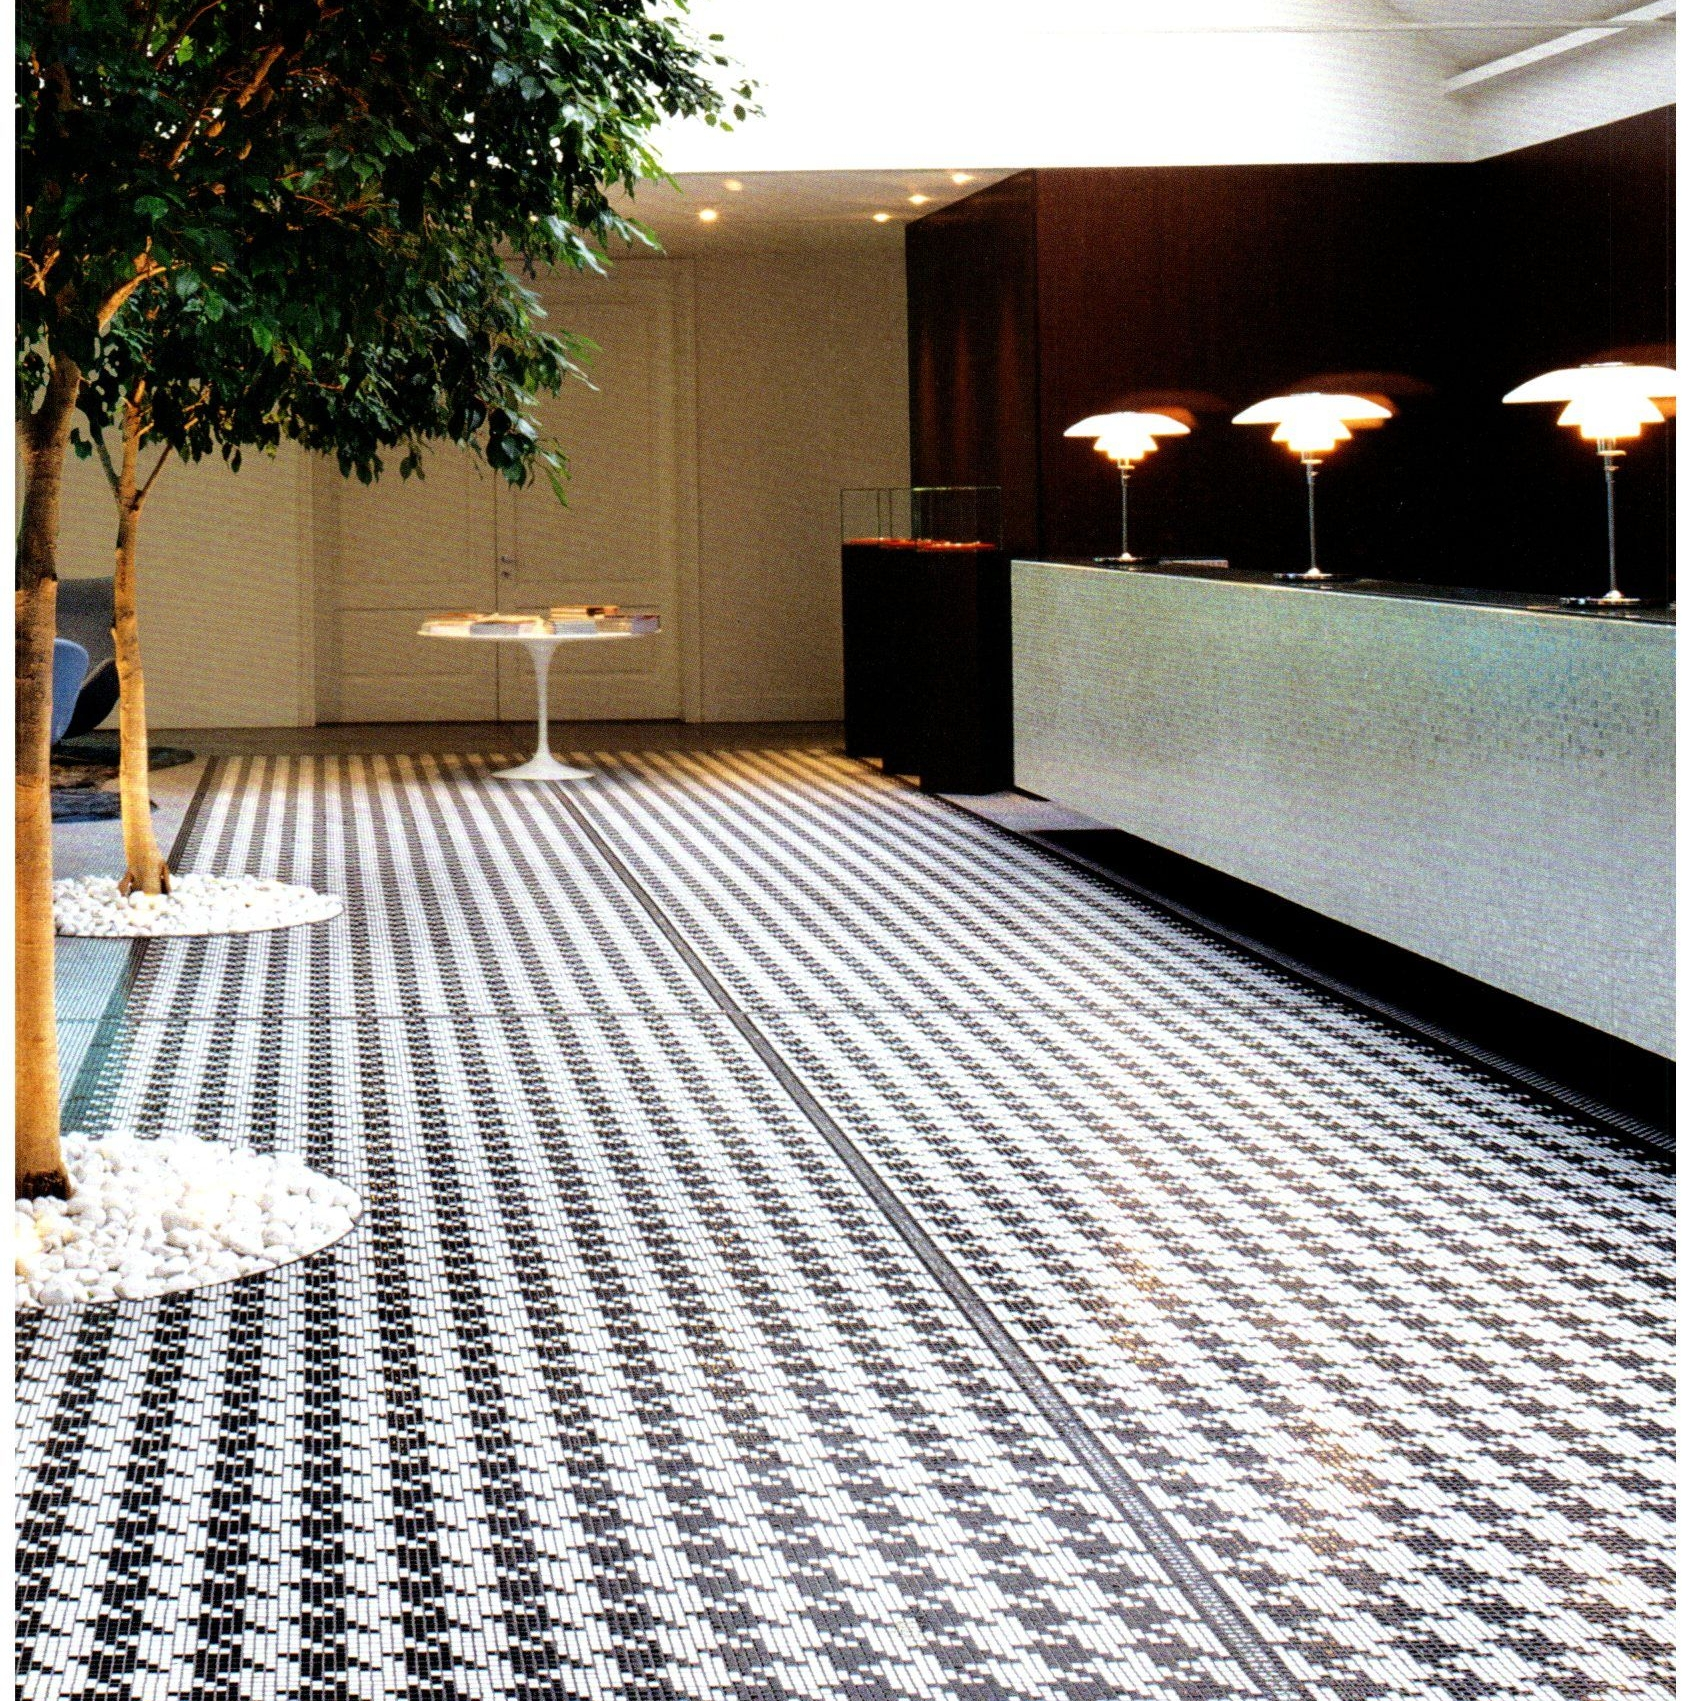 bisazza mosaic floor design